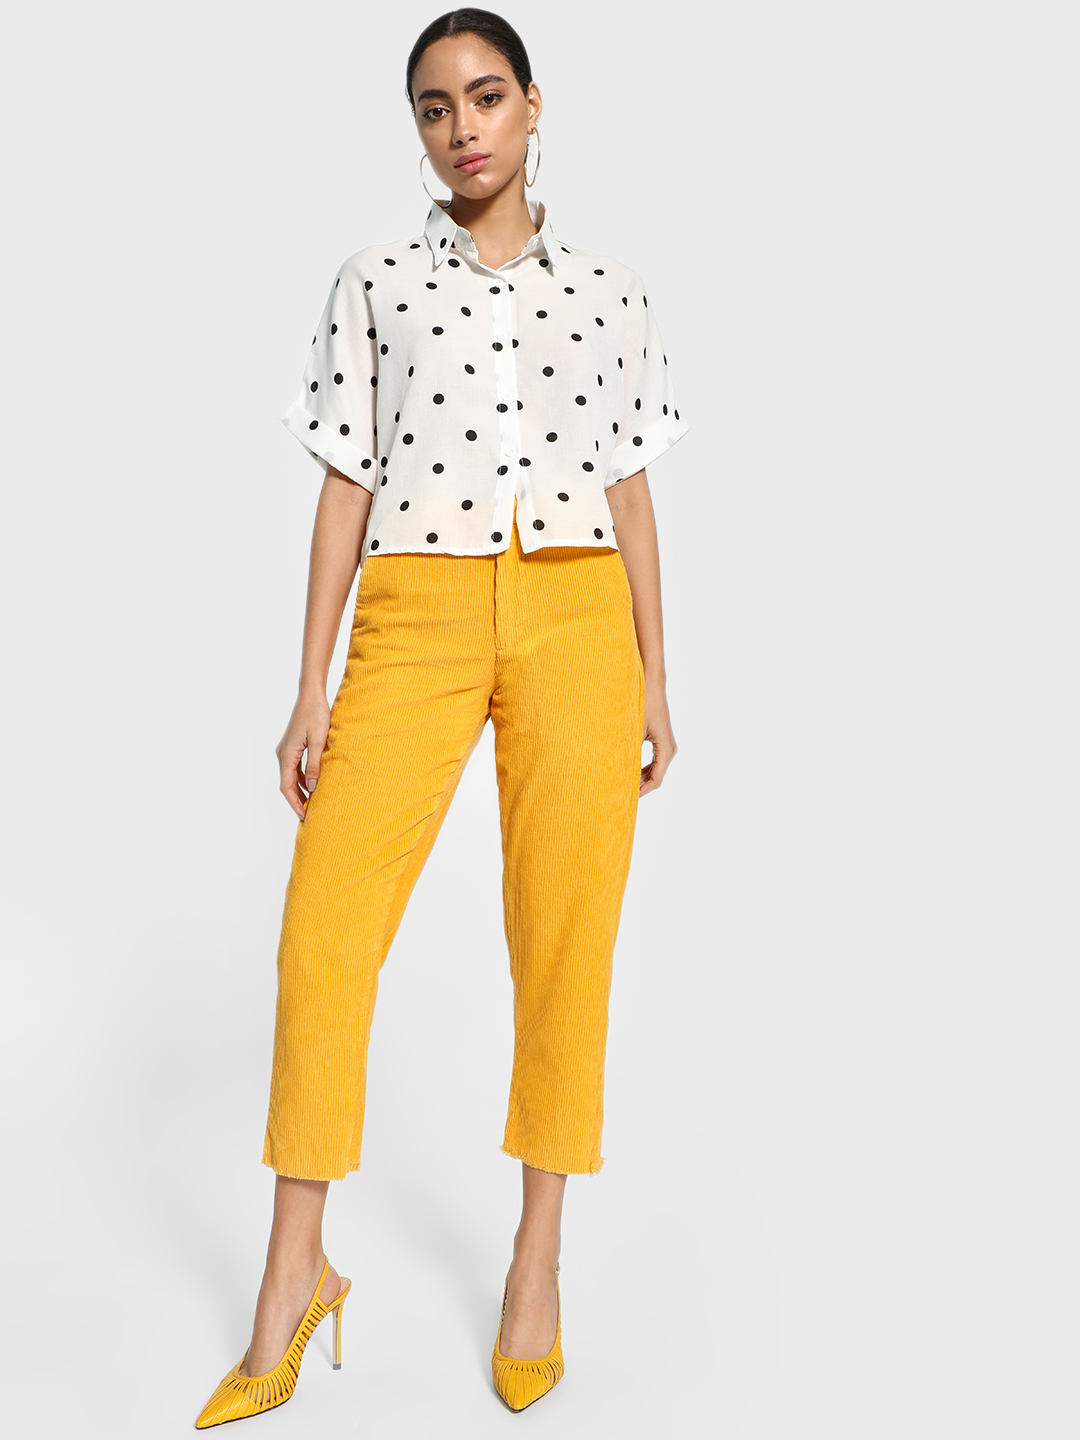 Blue Saint Yellow Corduroy Straight Cropped Trousers 1